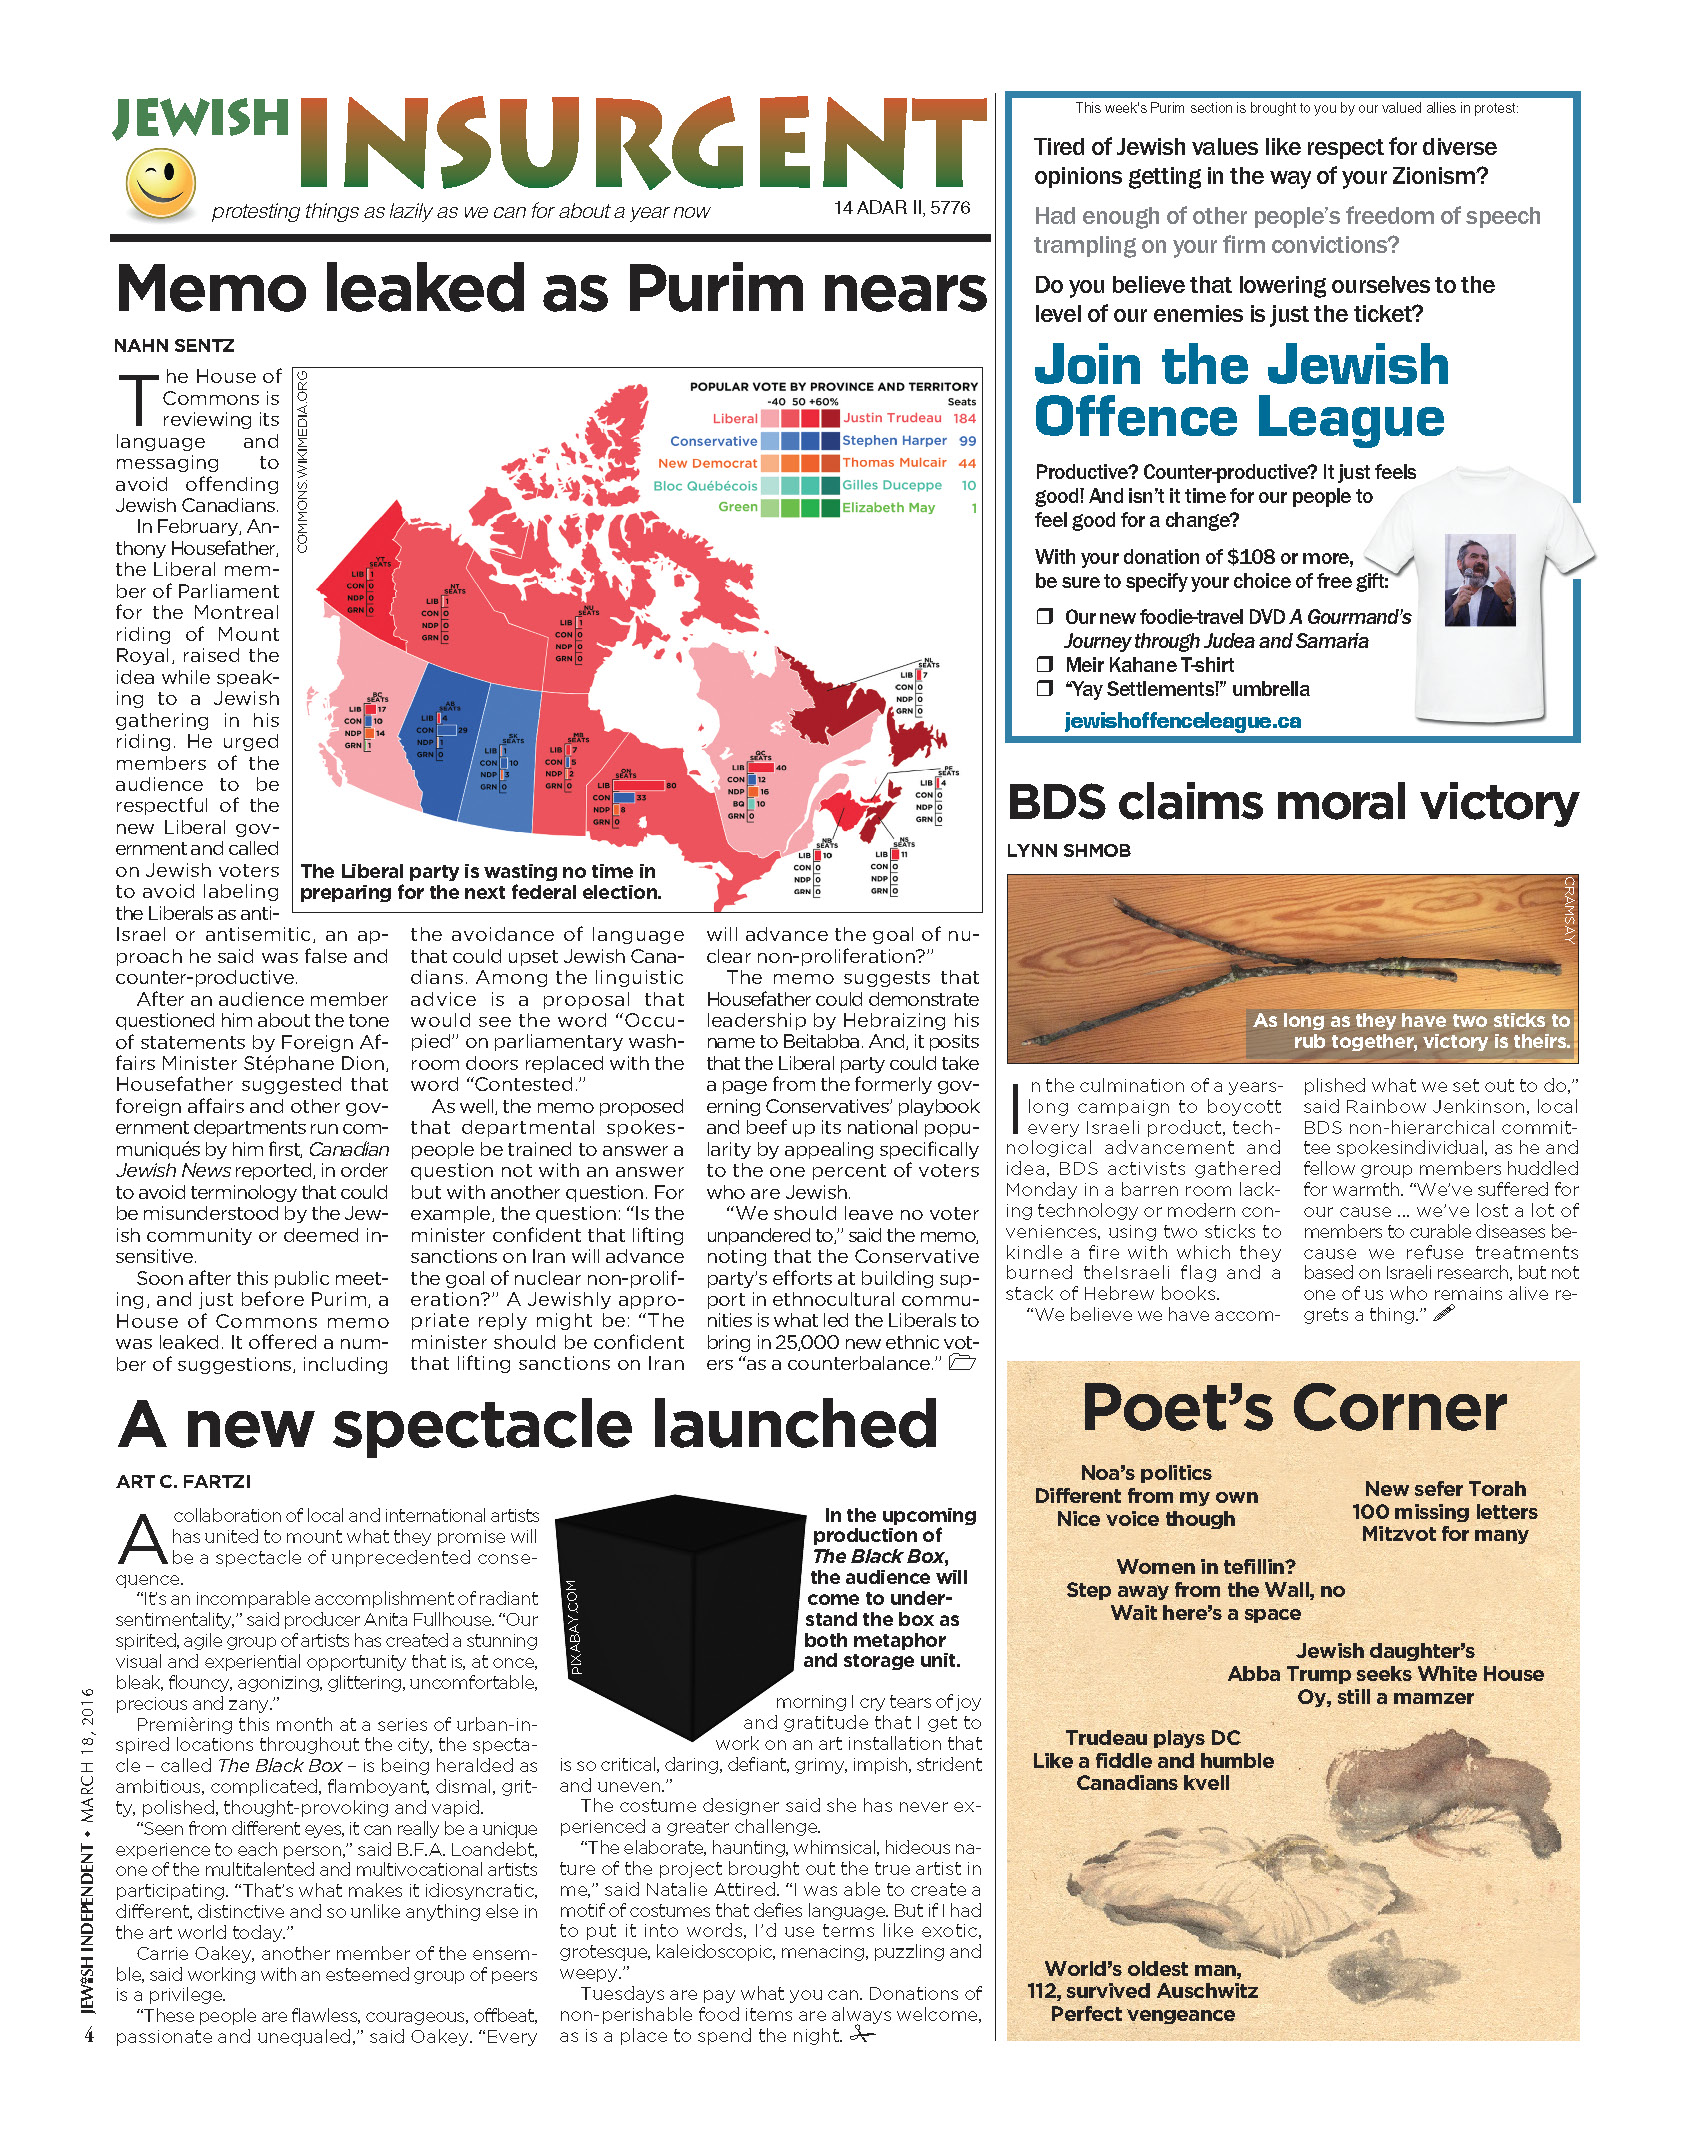 image - JI Purim spoof newspaper 2016